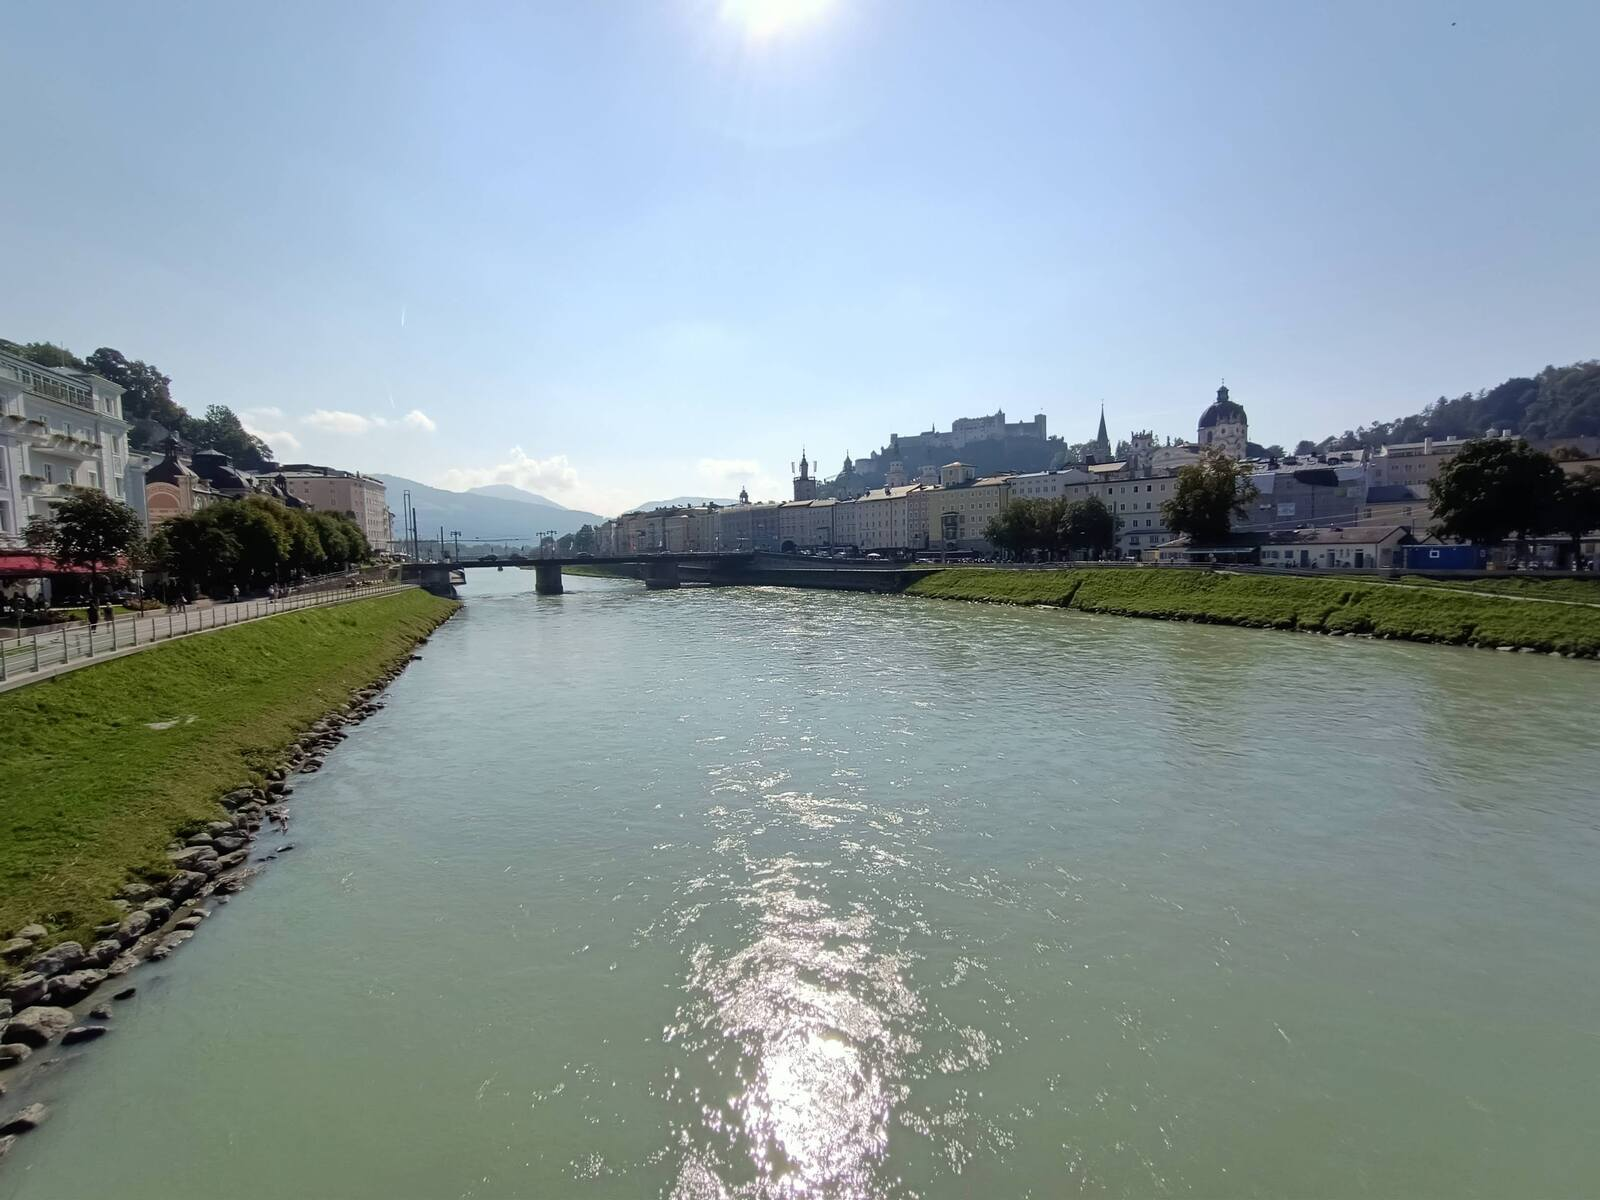 This is the river Salzach which goes through the City of Salzburg Austria